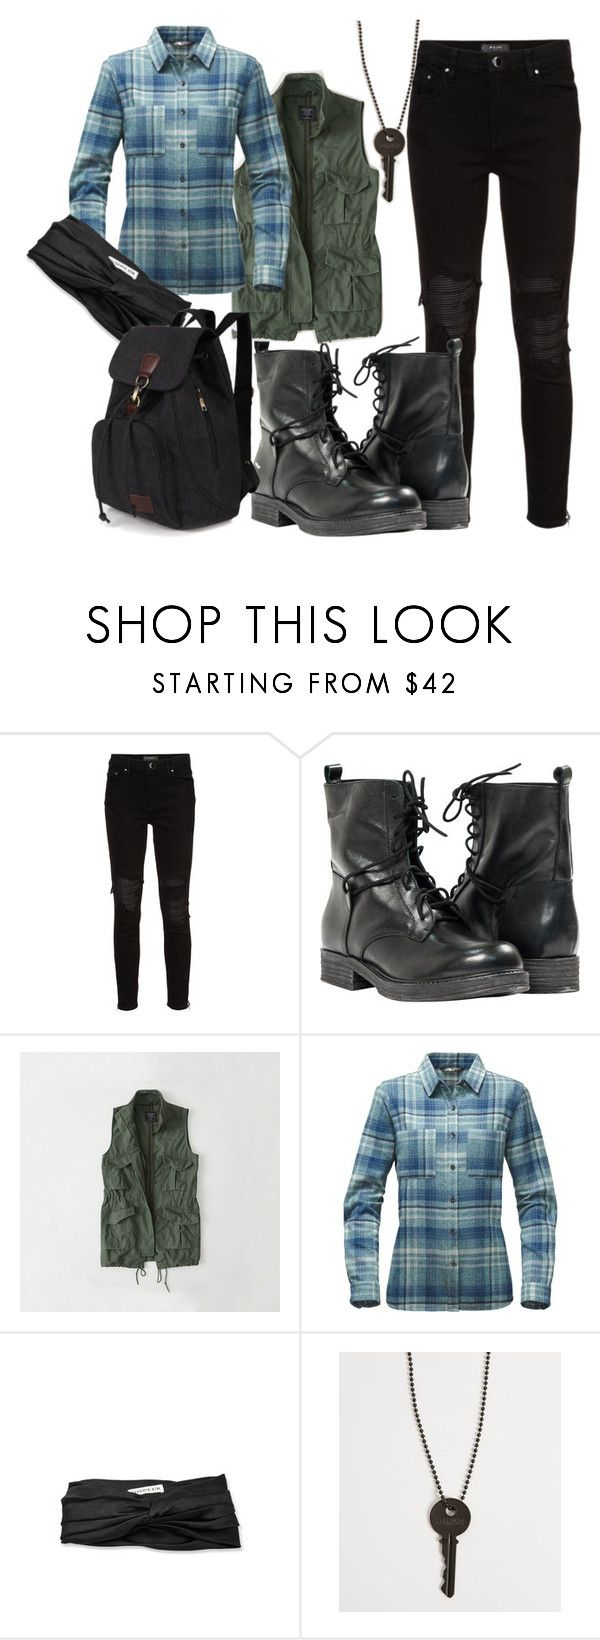 """Les-be-amazing"" by trinity-faith ❤ liked on Polyvore featuring AMIRI, Paolo Shoes, Abercrombie & Fitch, The North Face, Eugenia Kim and The Giving Keys"